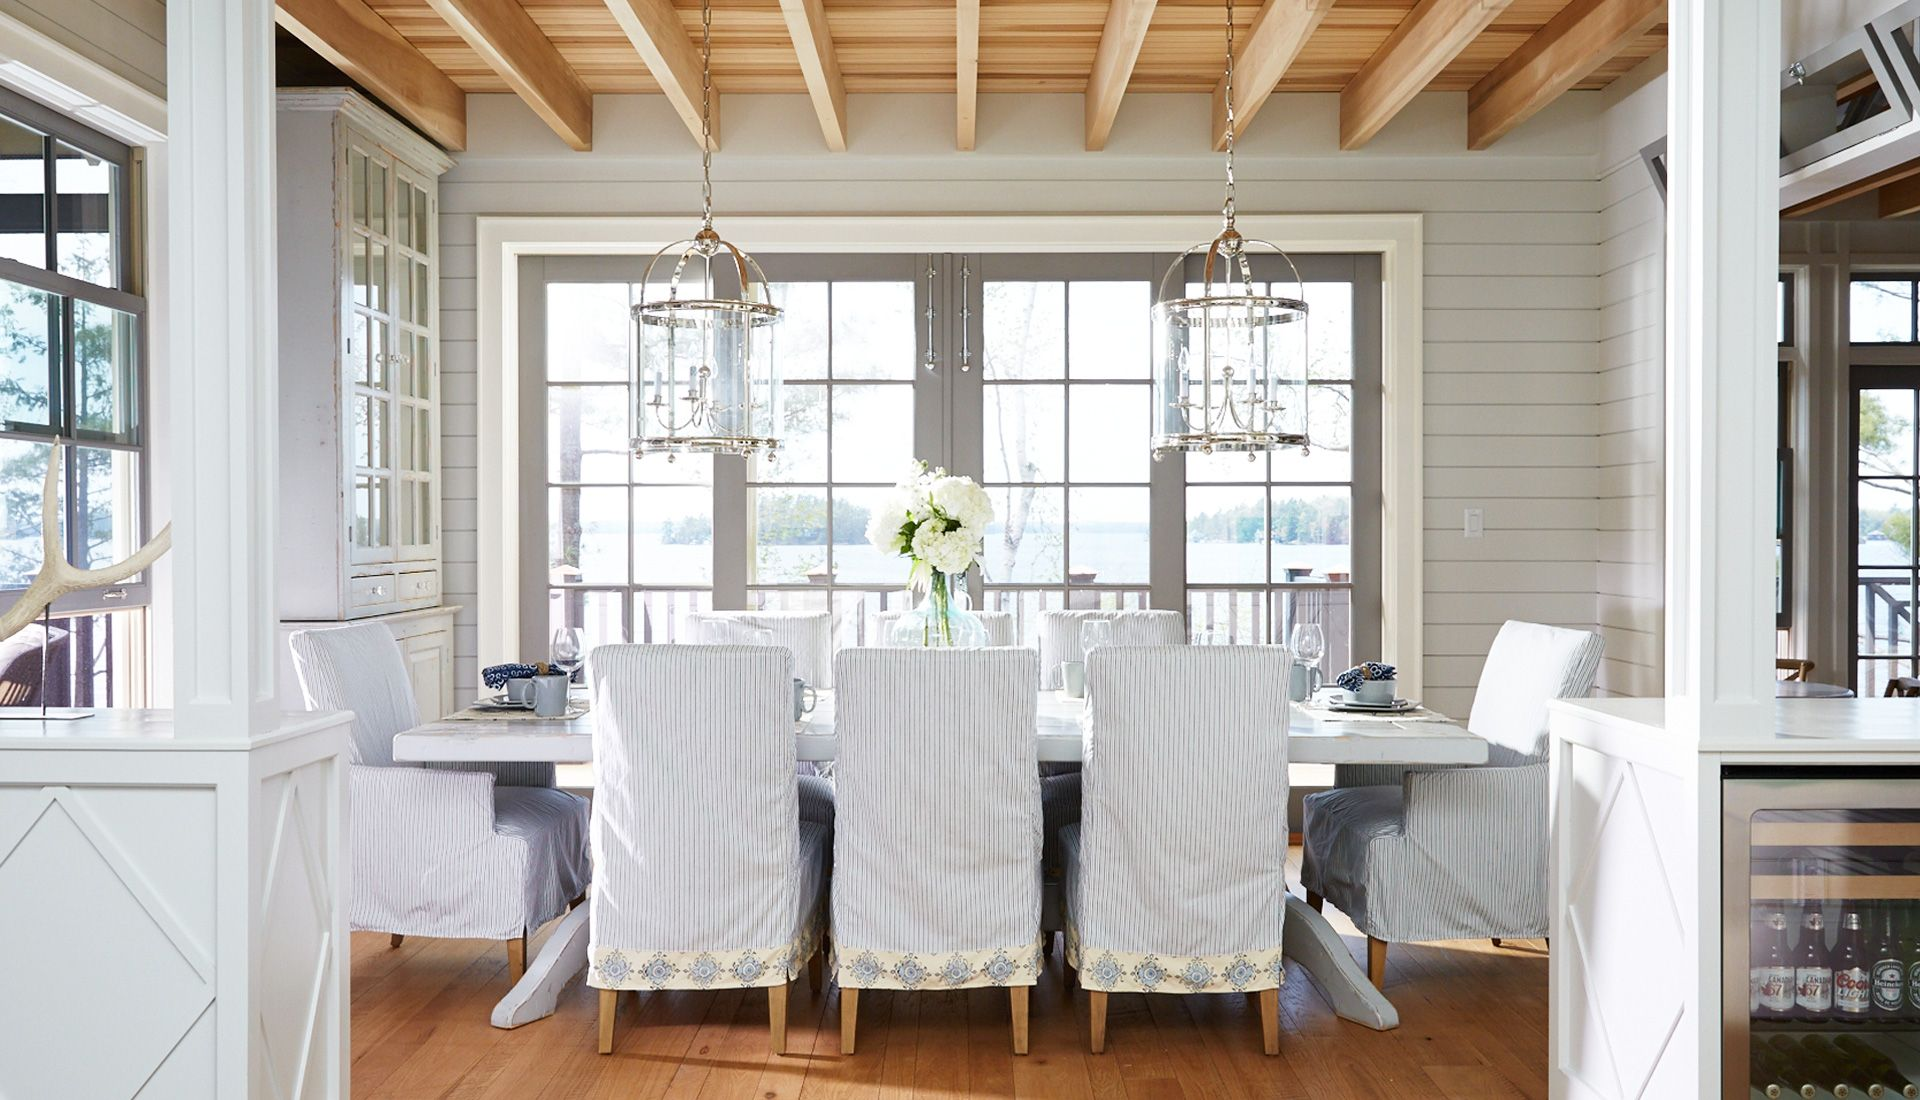 Abington muskoka living interiors muskoka ontario dining for Dining room area ideas